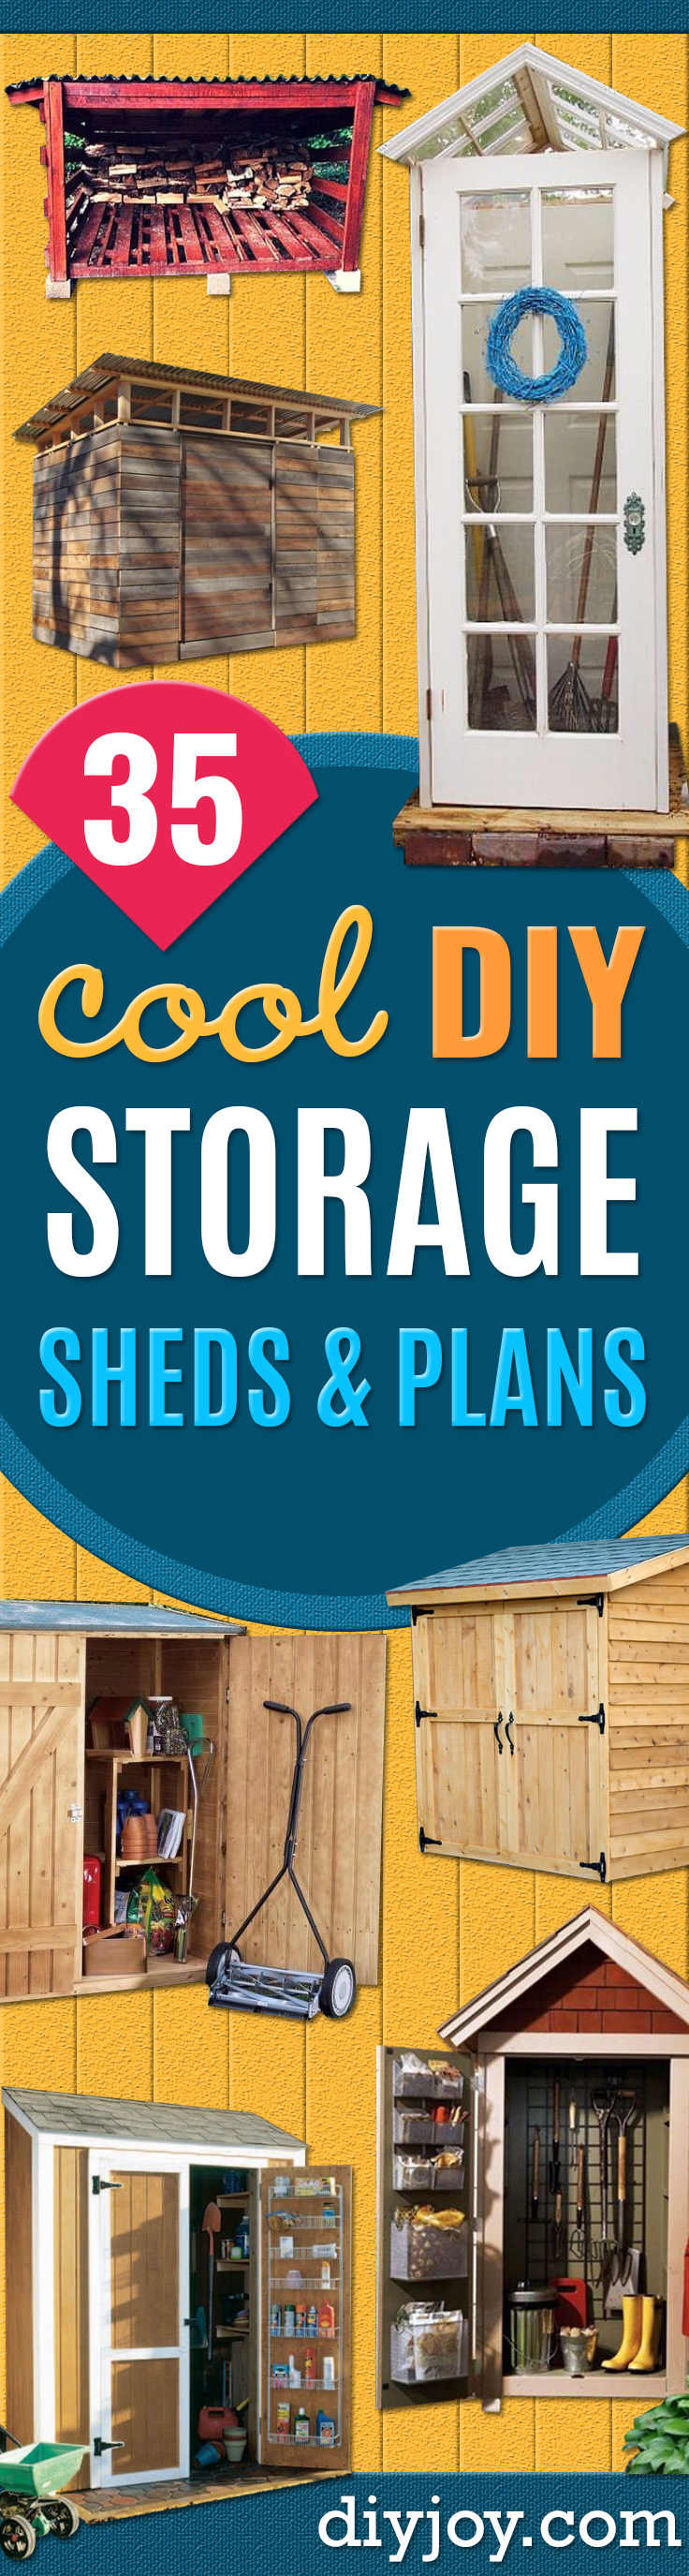 DIY Storage Sheds and Plans - Cool and Easy Storage Shed Makeovers, Cheap Ideas to Build This Weekend, Basic Woodworking Projects to Add Extra Storage Space to Your Home or Small Backyard - How To Build A Shed With Pallets - Step by Step Tutorials and Instructions http://diyjoy.com/diy-storage-sheds-plans